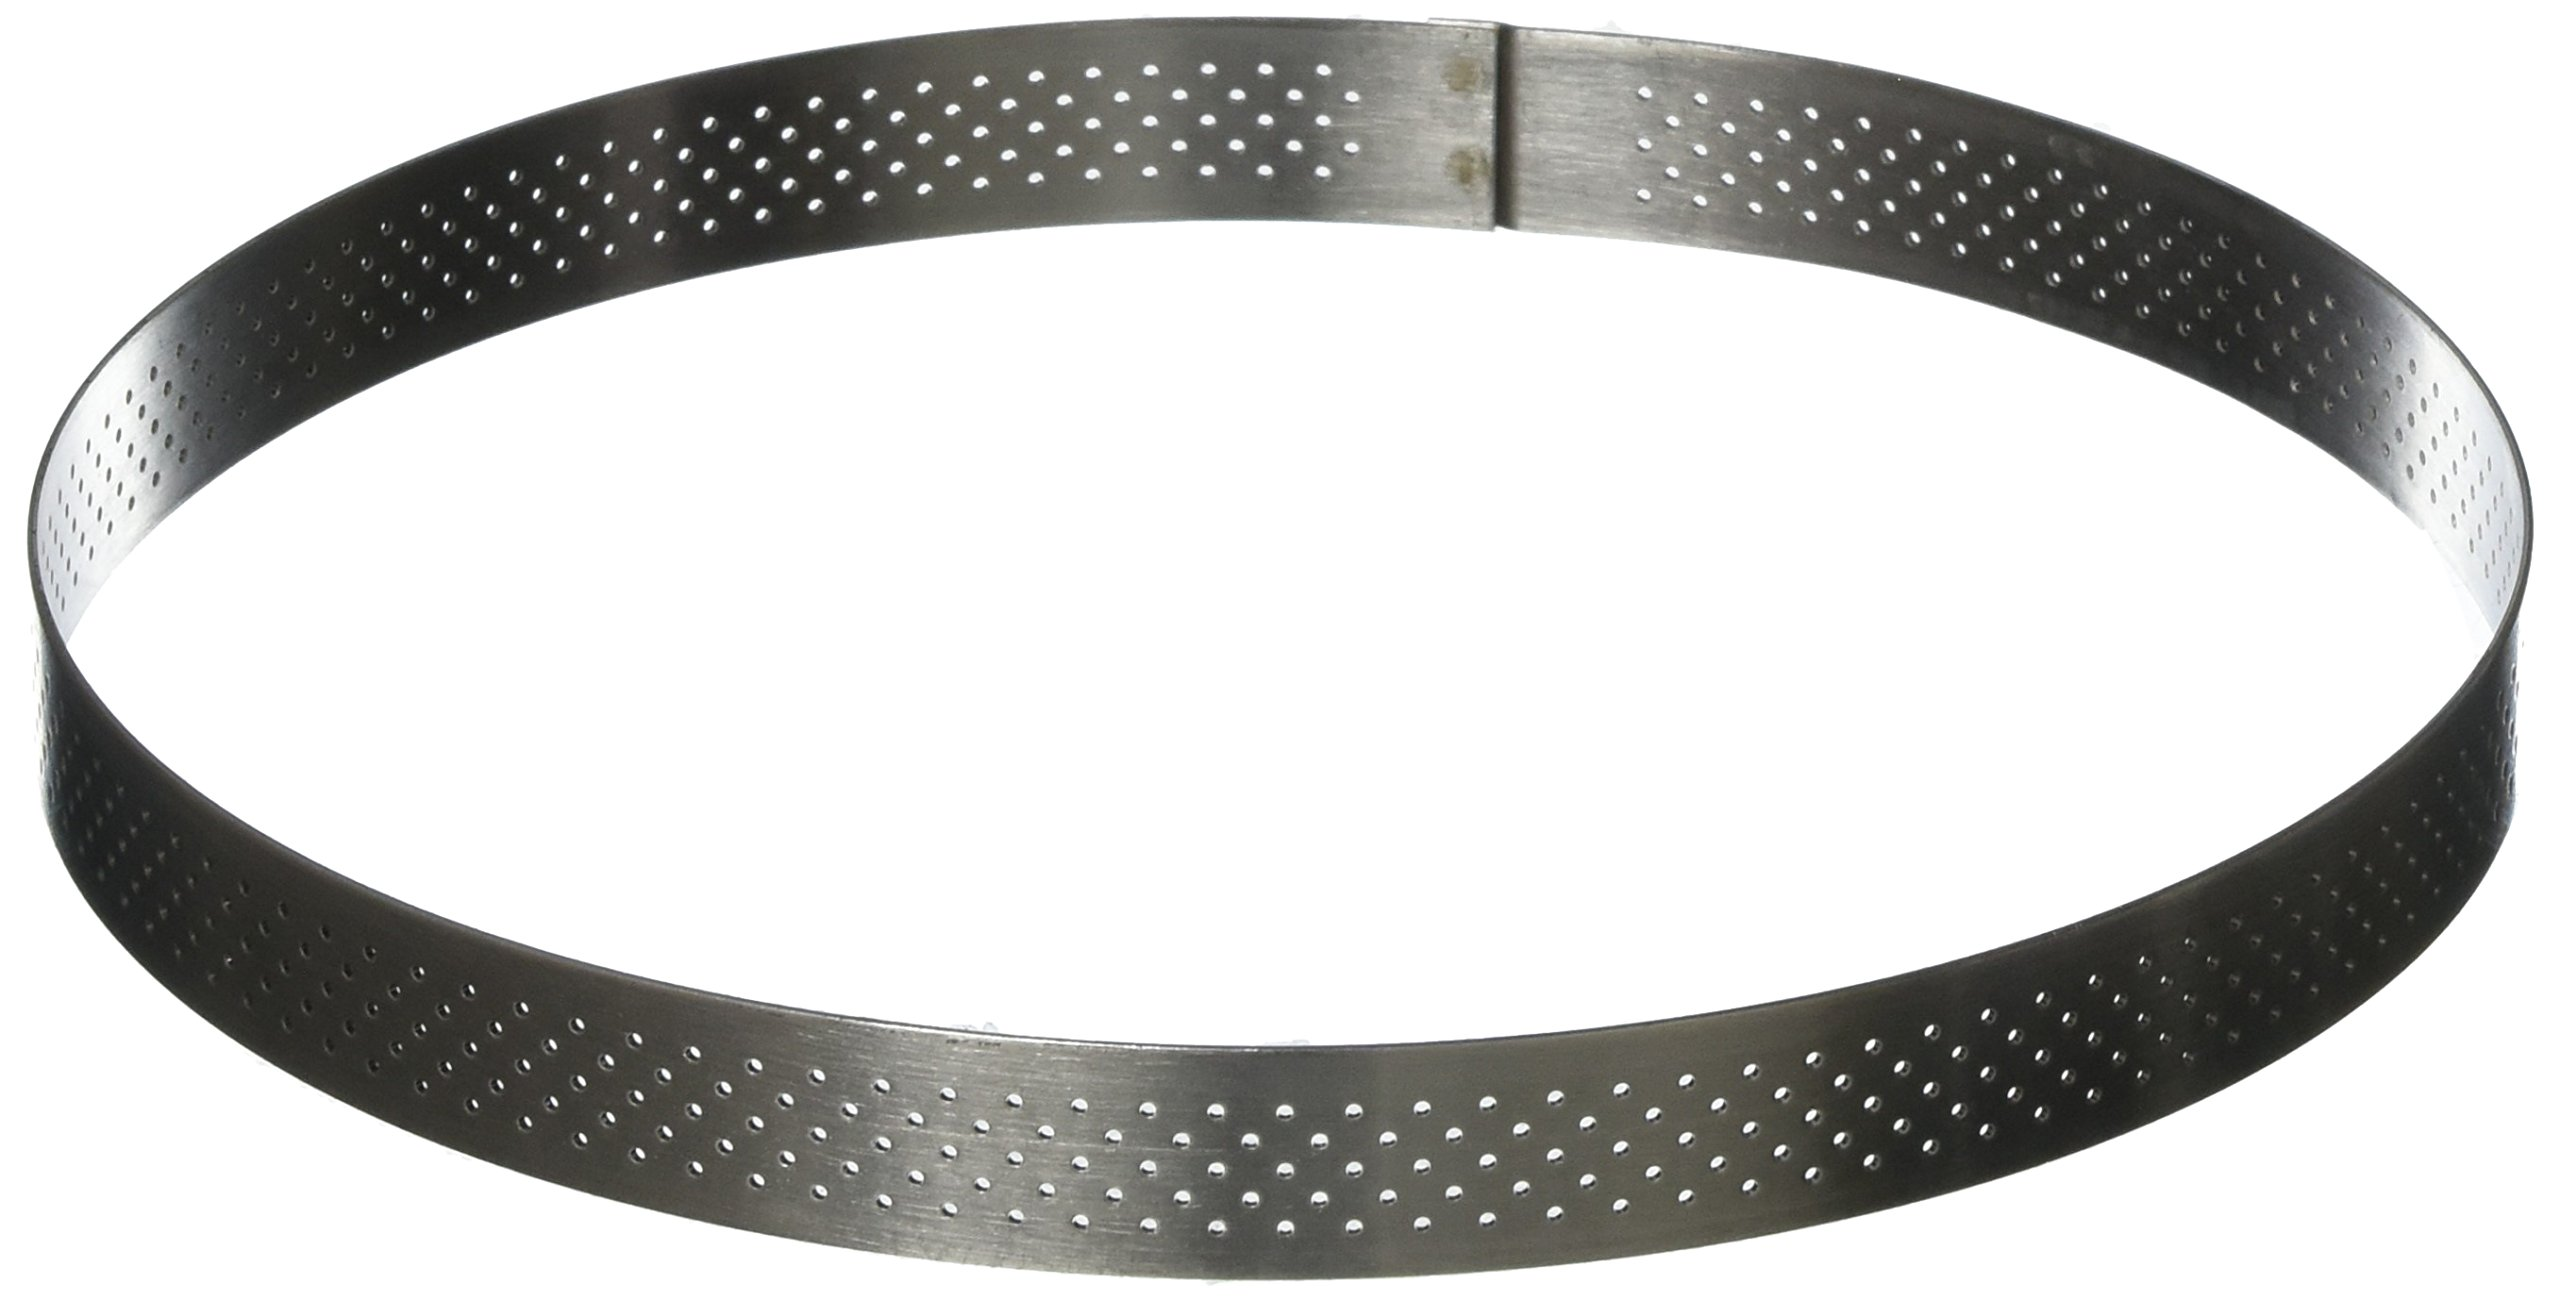 PERFORATED TART RING, Round, in Stainless Steel, 0.75-Inch high O 8-Inch